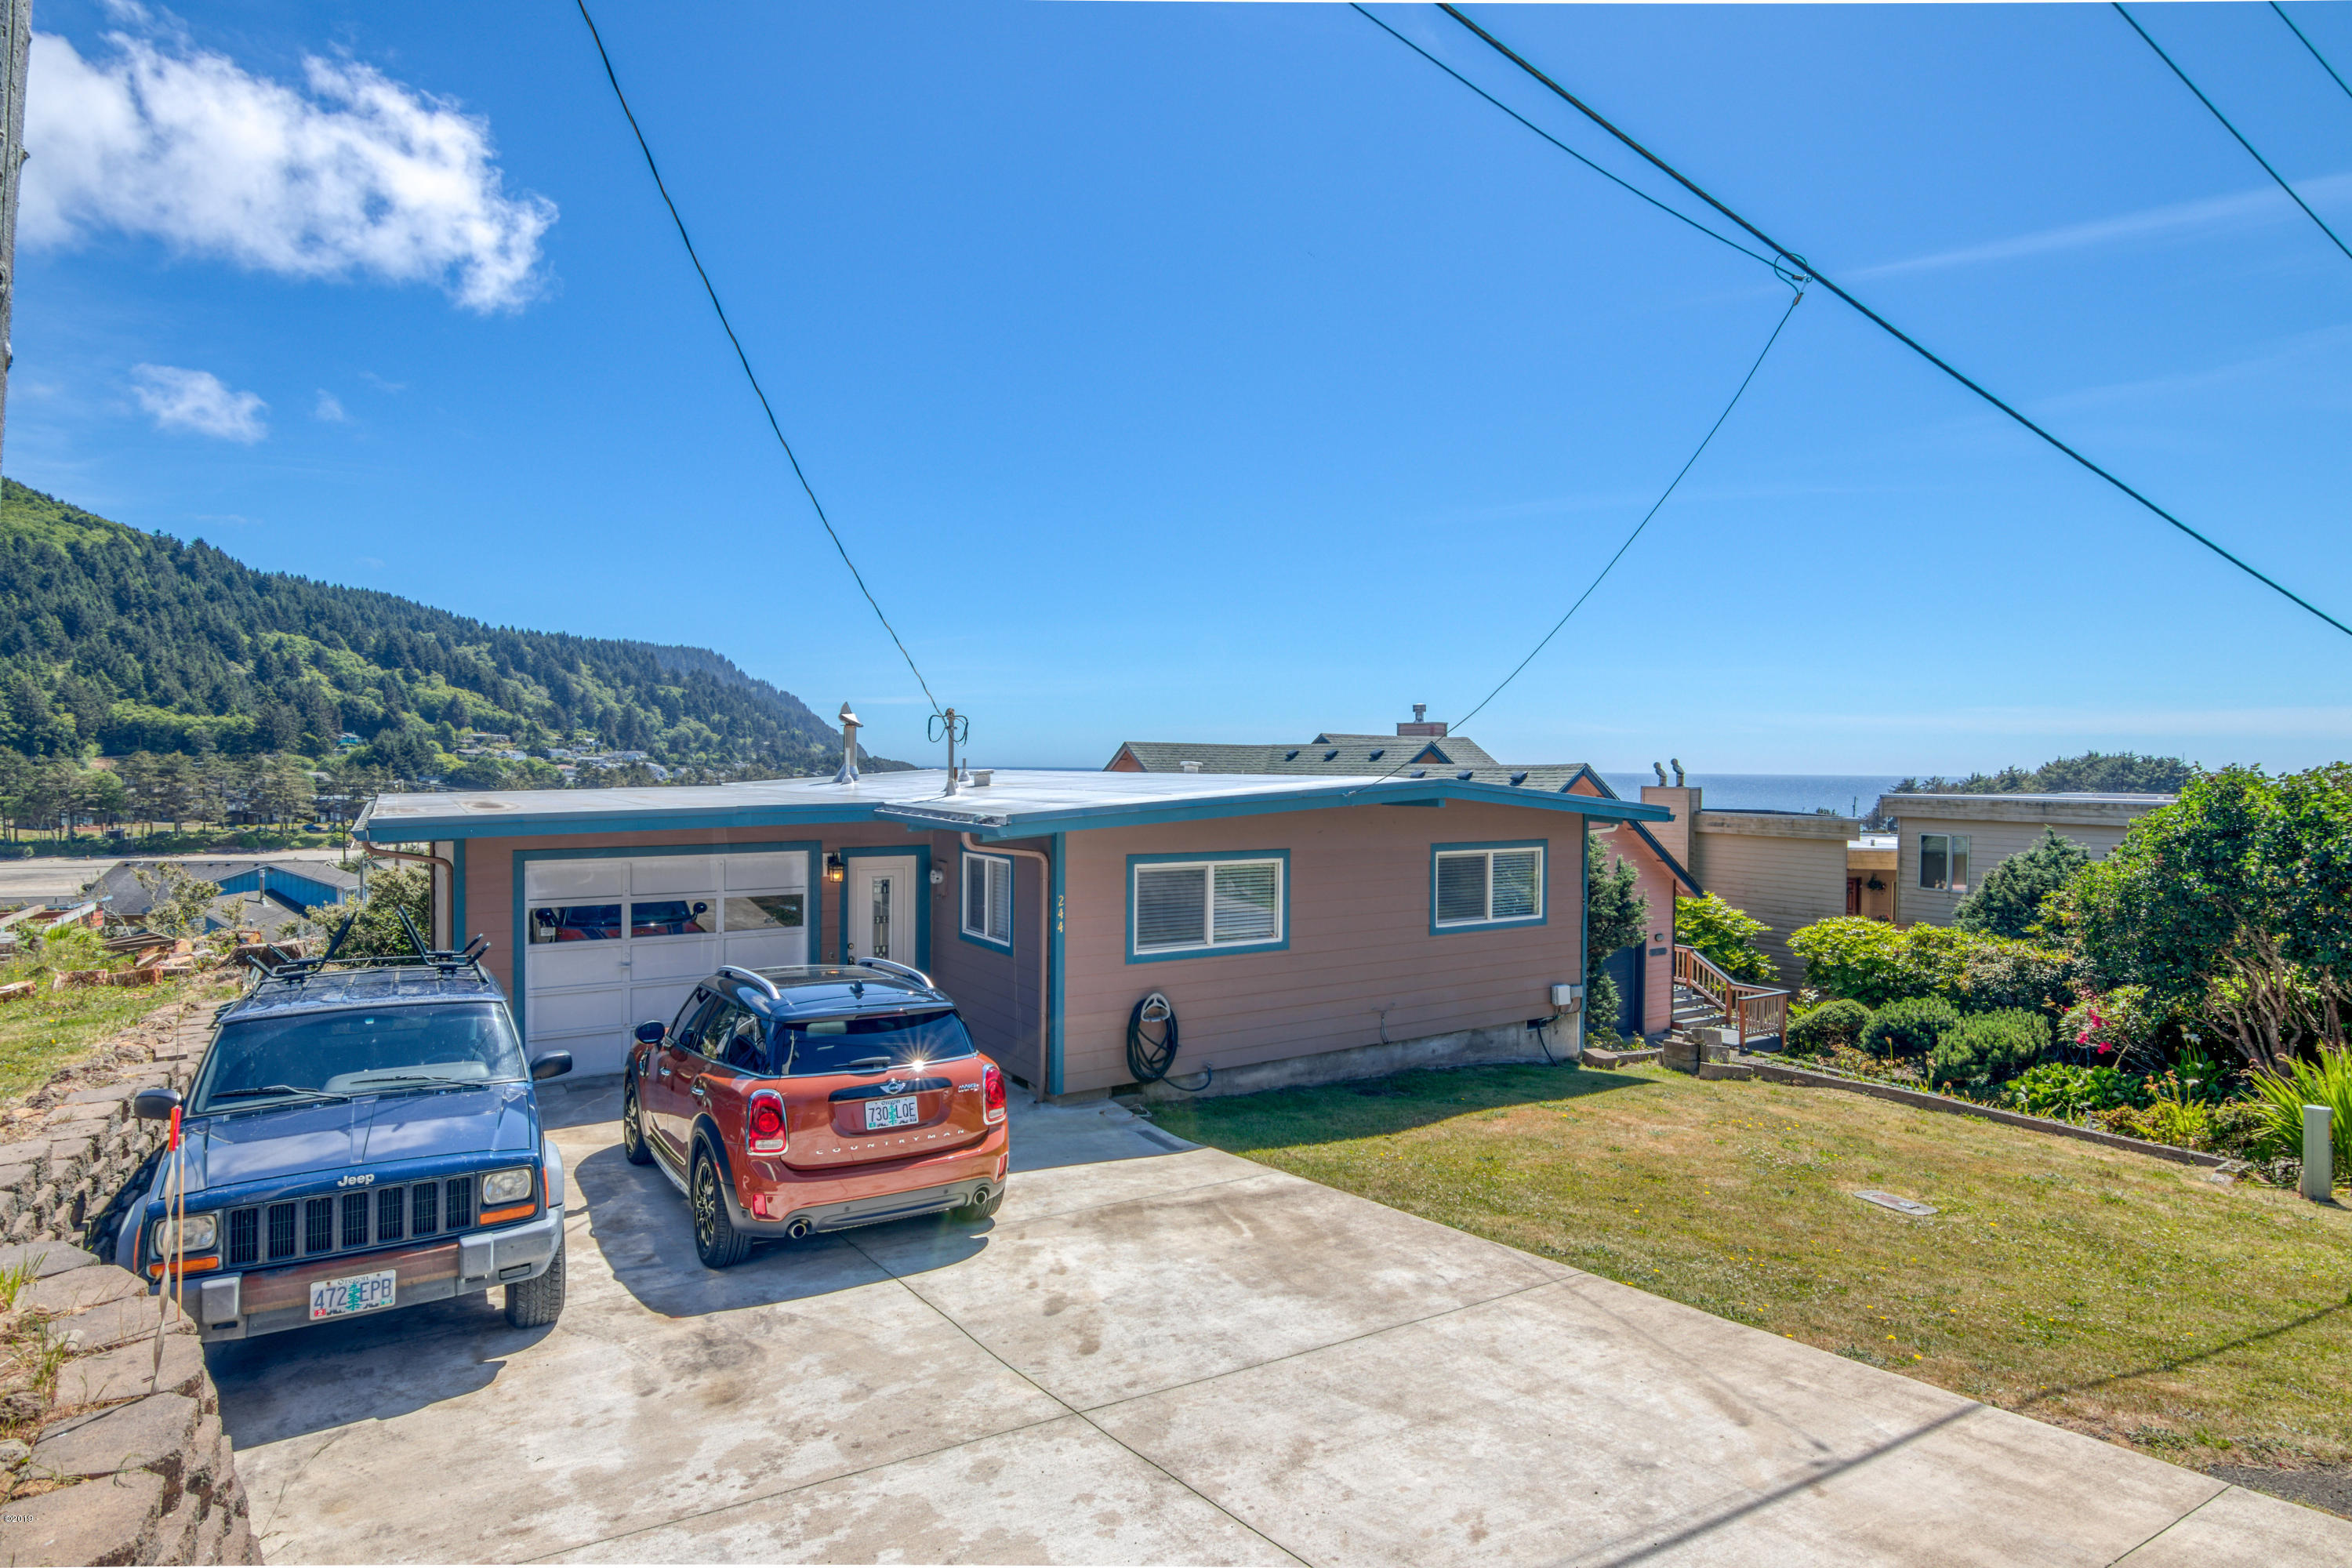 244 E 3rd St, Yachats, OR 97498 - 1-3rd St